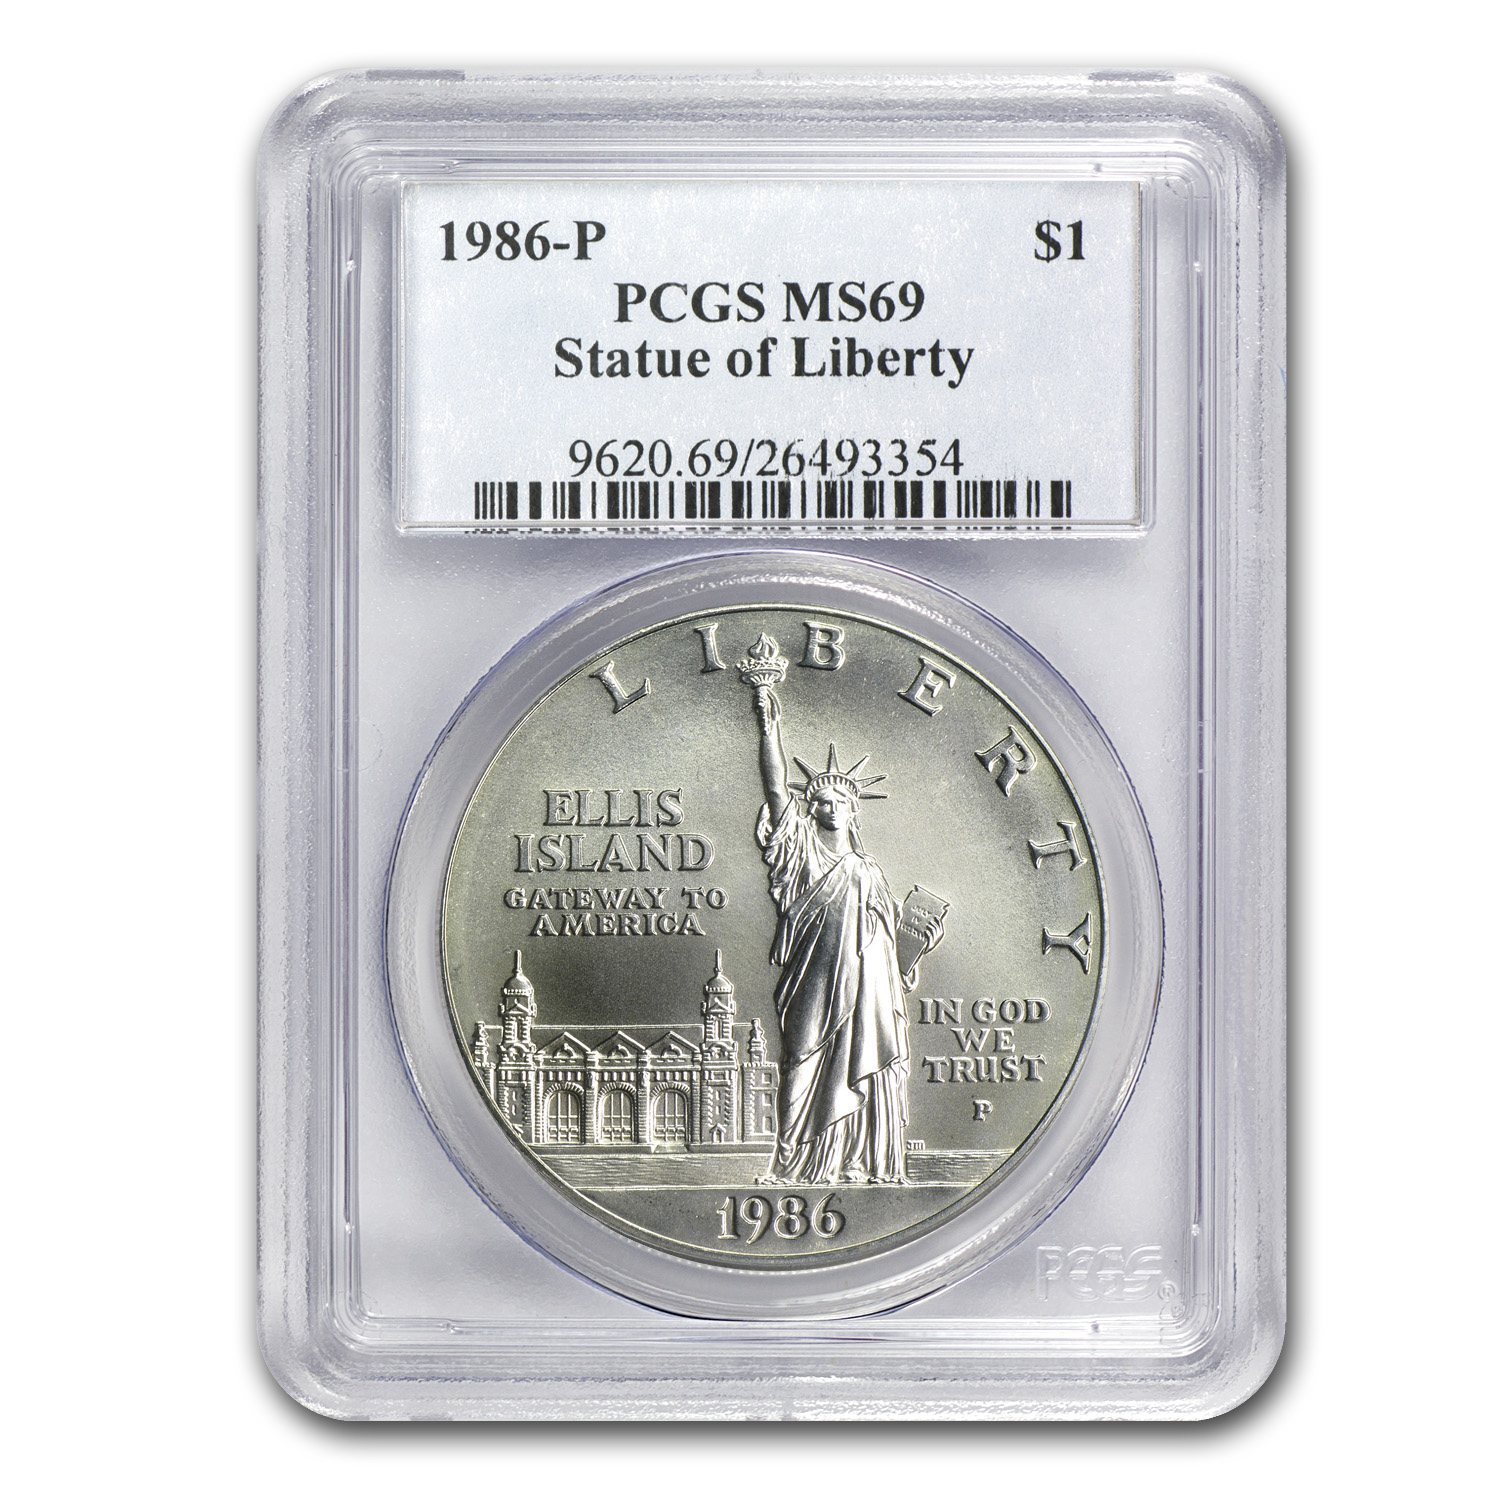 1986-P Statue of Liberty $1 Silver Commem MS-69 PCGS